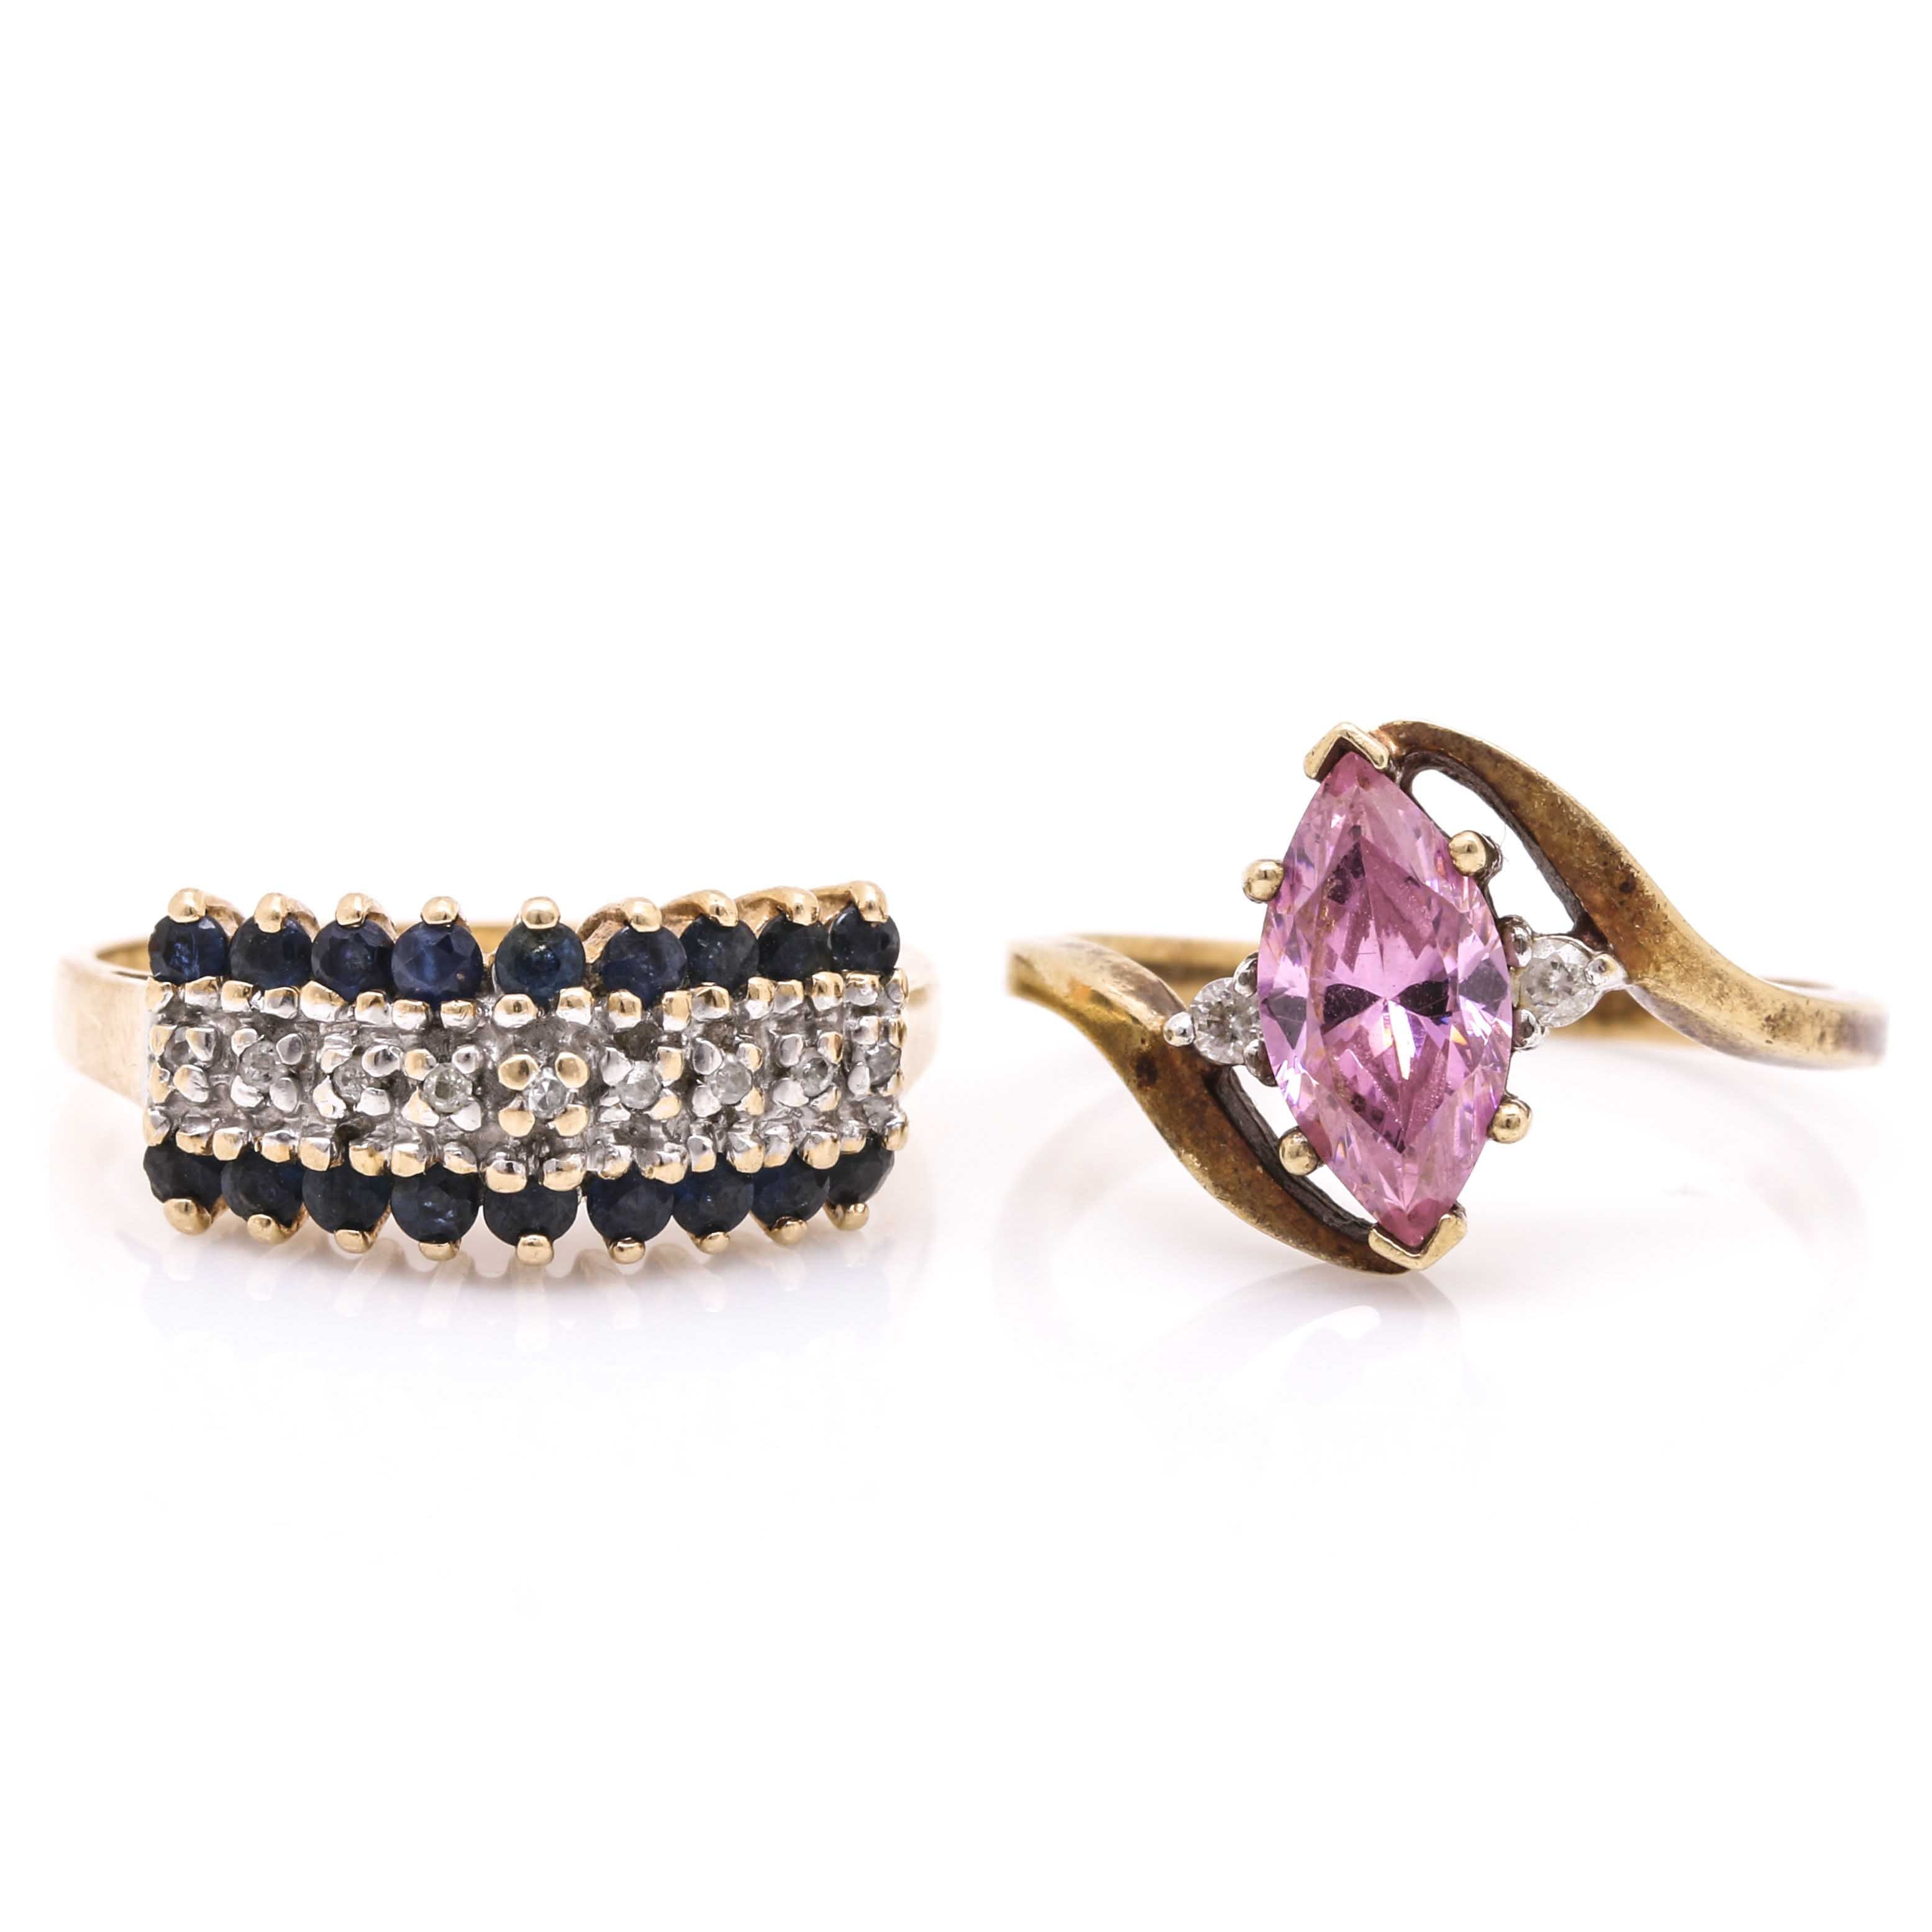 Two 10K Yellow Gold Rings Featuring Diamonds, Sapphires and Cubic Zirconia